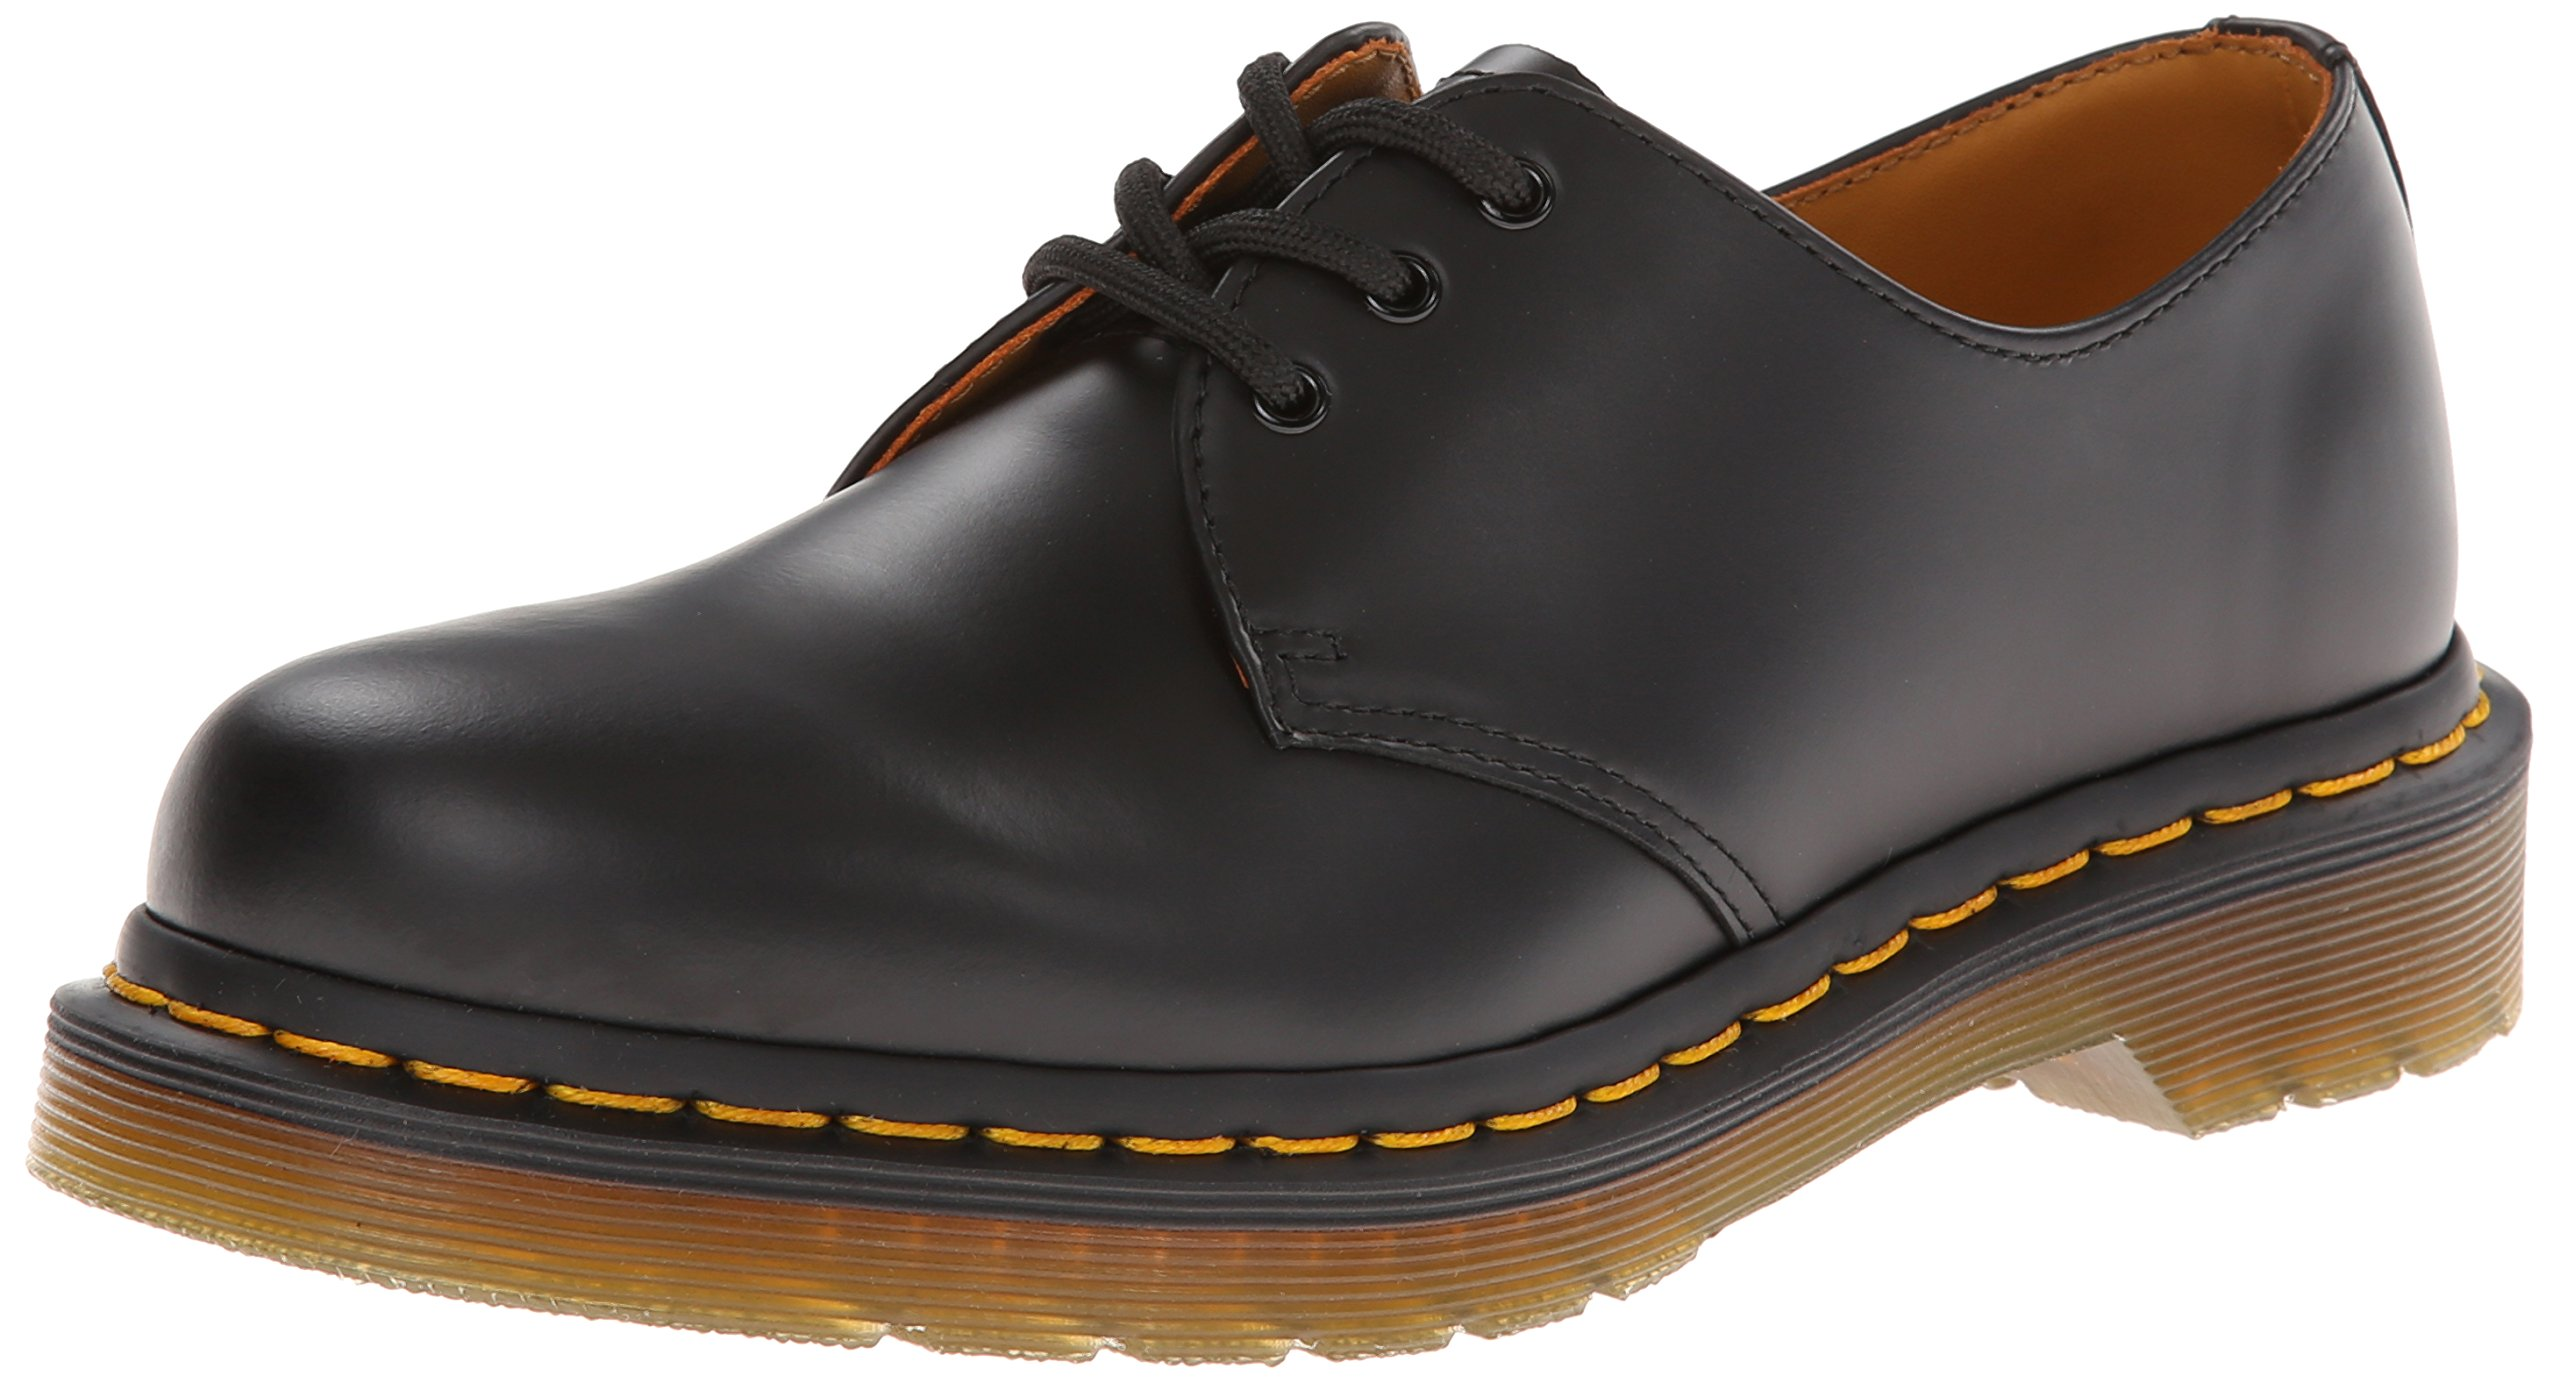 Dr. Martens Men's 1461 3 Eye Shoe,Black Nappa,8 UK/9 M US